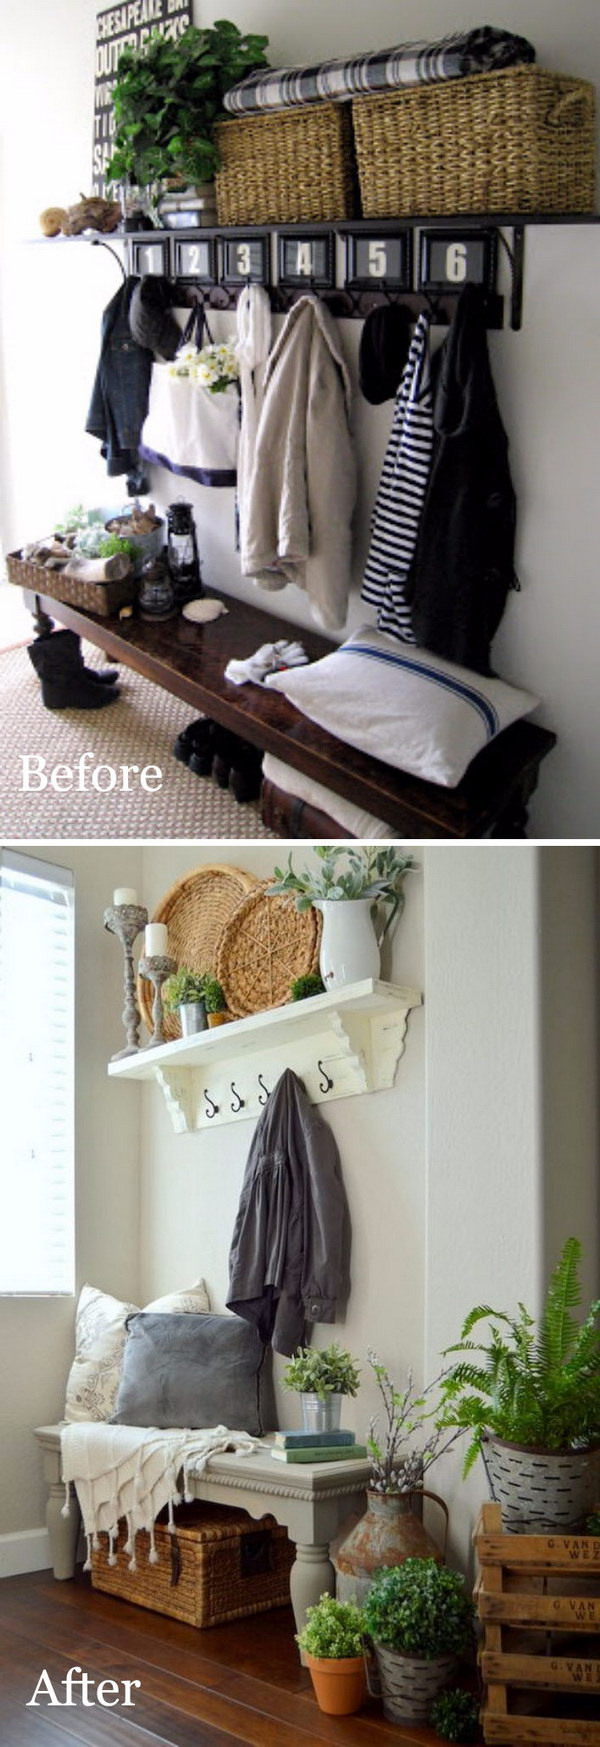 Rustic Chic Entryway Reveal.